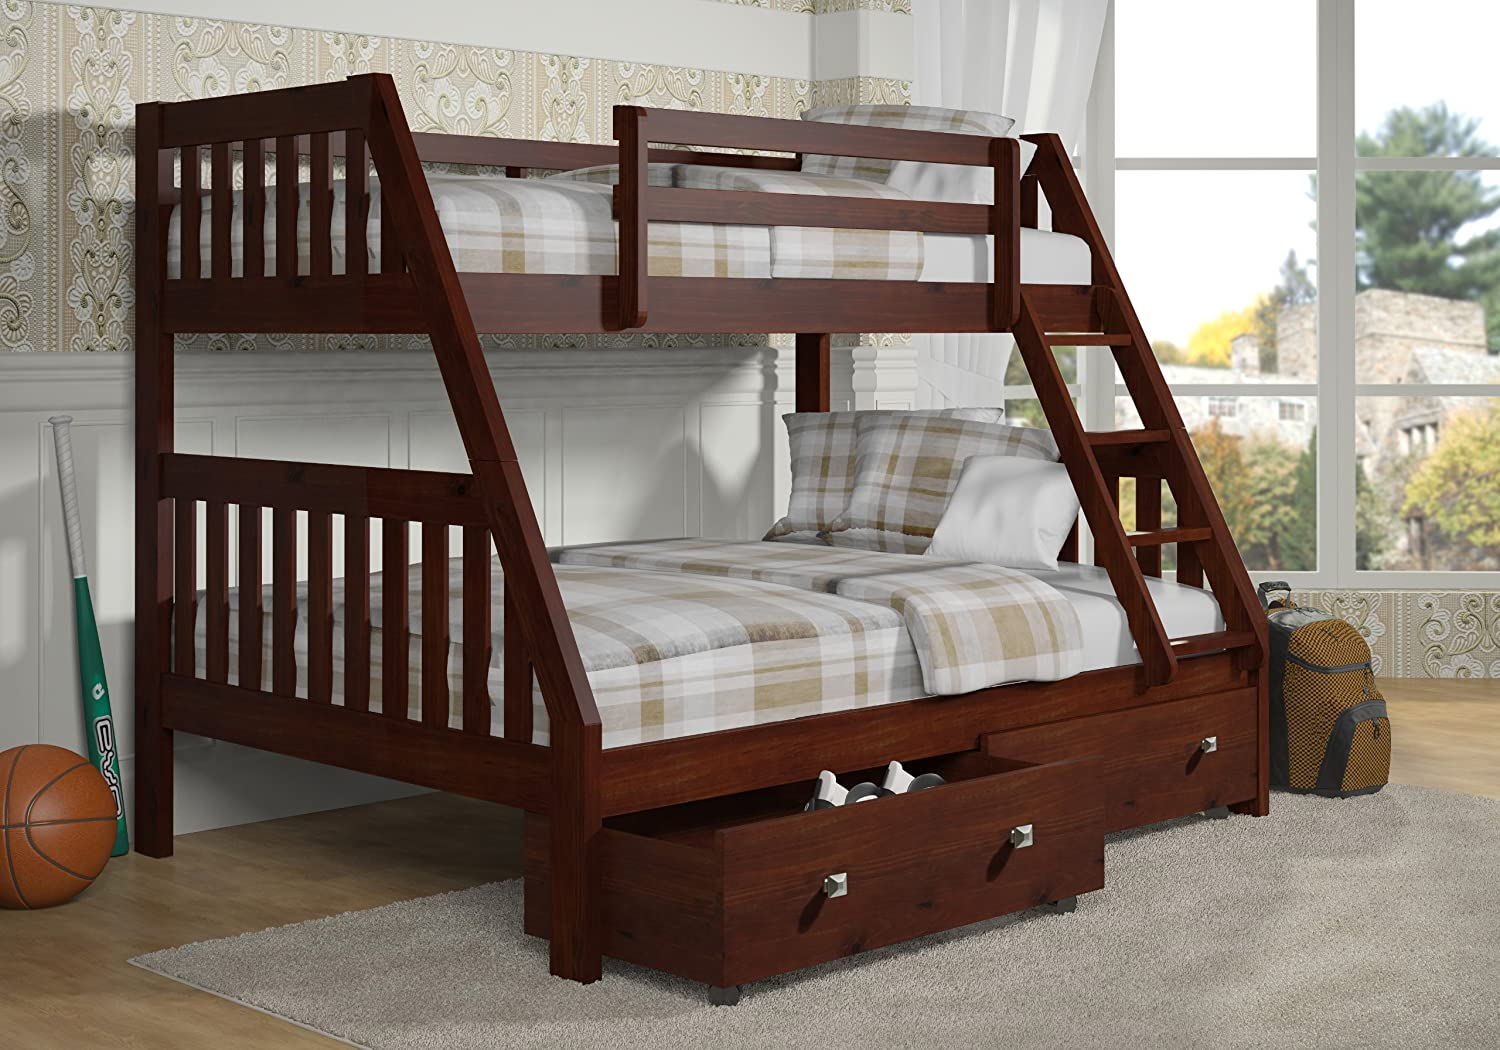 DONCO Bunk Bed Twin over Full Mission Style-Dark Cappuccino Finish-Includes Drawers